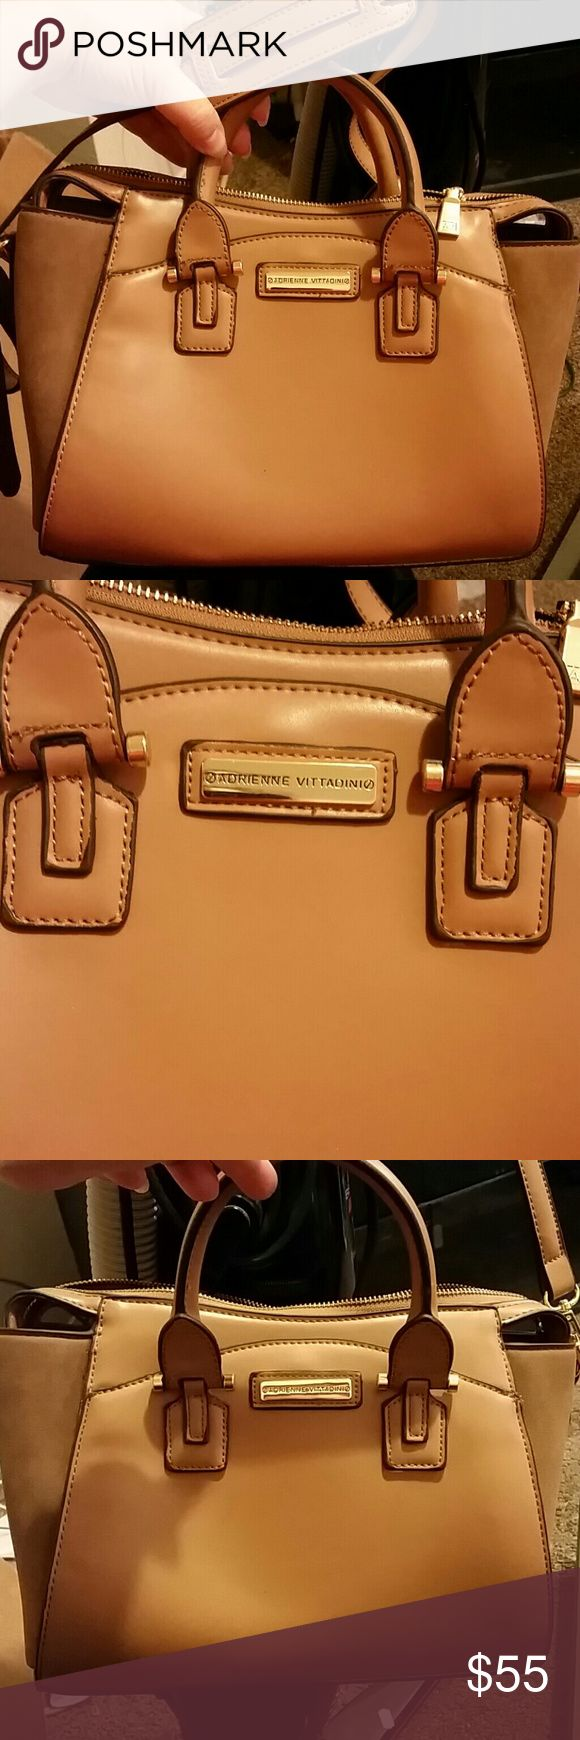 NEW ADRIANNE VITTADINI TAN & GOLD SATCHEL Brand New Perfect Condition Suede Sides Gold Hardware is BEAUTIFUL  MEASURES: 14L*9H*5 REINFORCED CROSSBODY STRAP: 55 INCH ADJUSTABLE SATCHEL STRAPS: 8 INCH STRAP DROP Adrienne Vittadini Bags Satchels